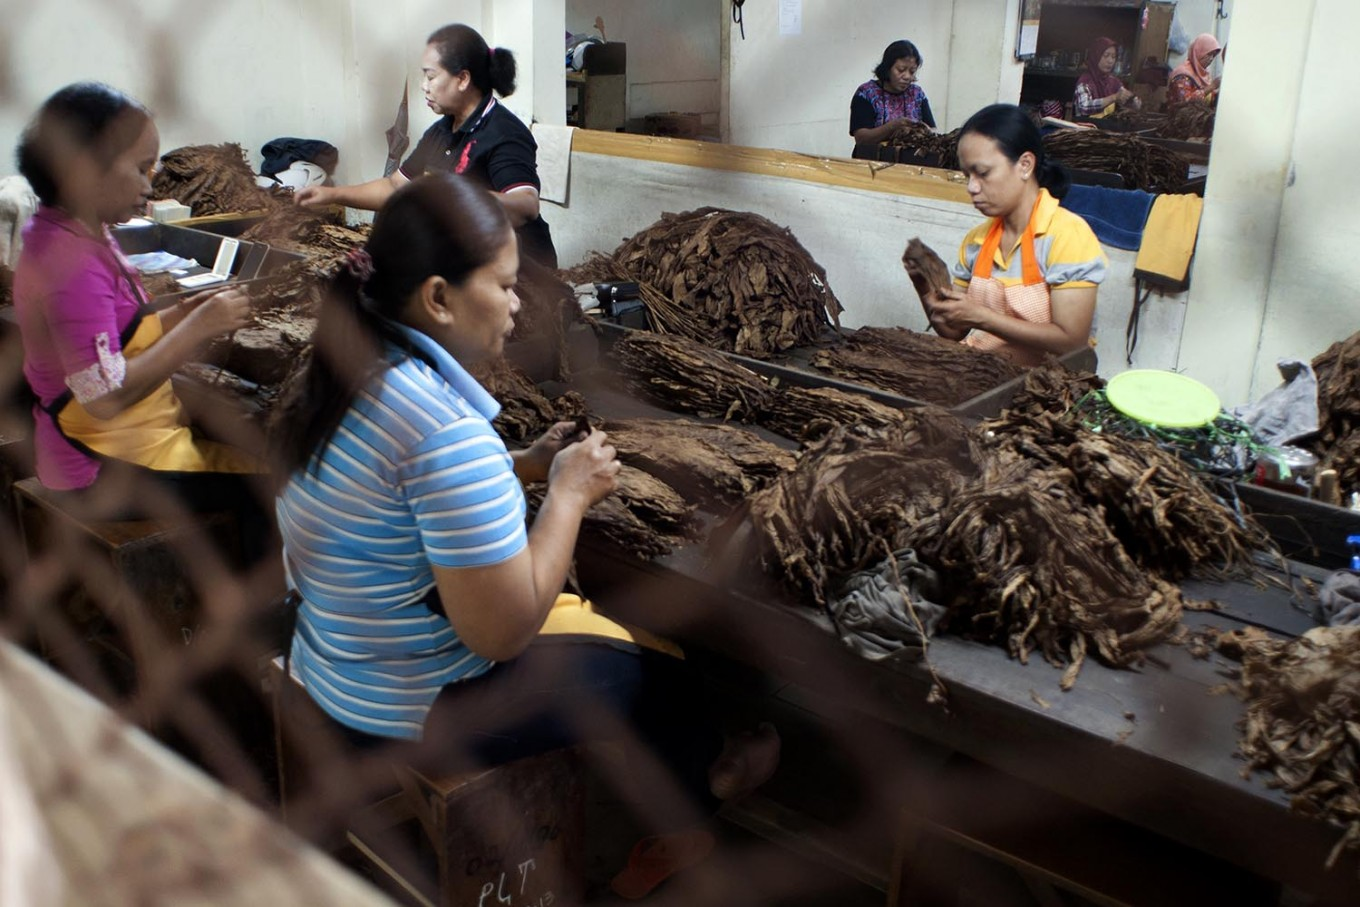 Female workers sort dried Vorstenlanden tobacco leaves before going to the cutting machine. JP/Magnus Hendratmo